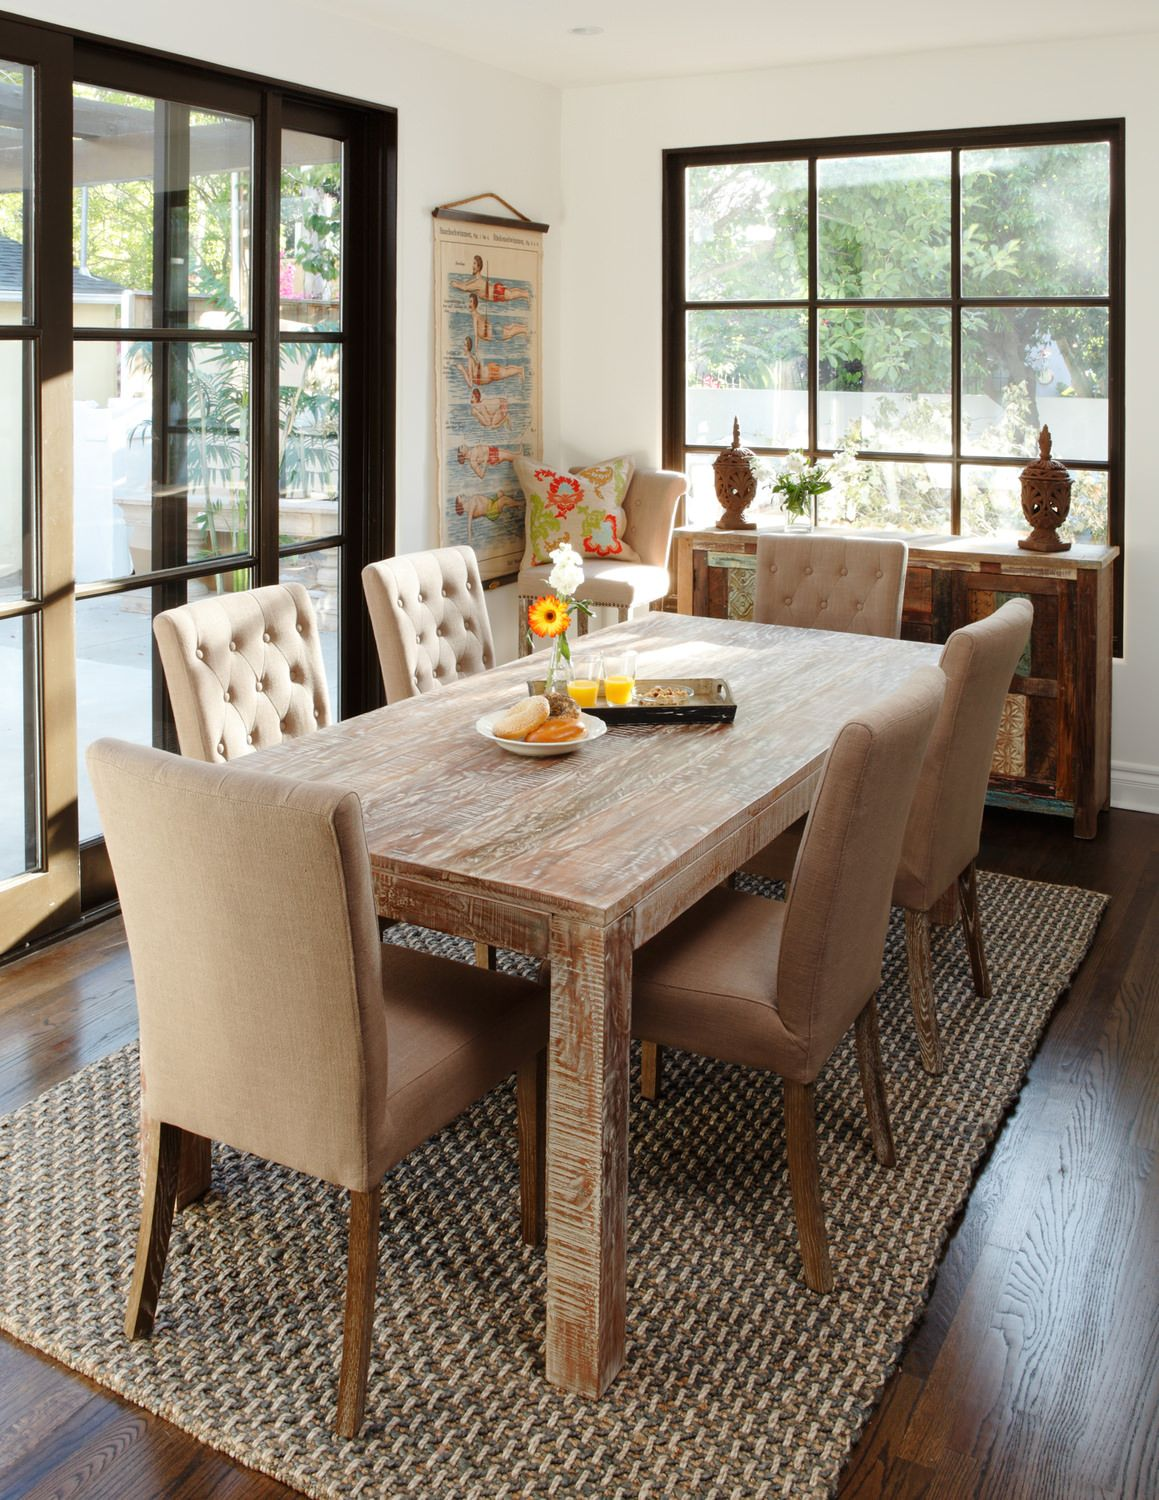 Hampton Dining Table Hom Furniture S In Minneapolis Minnesota Midwest